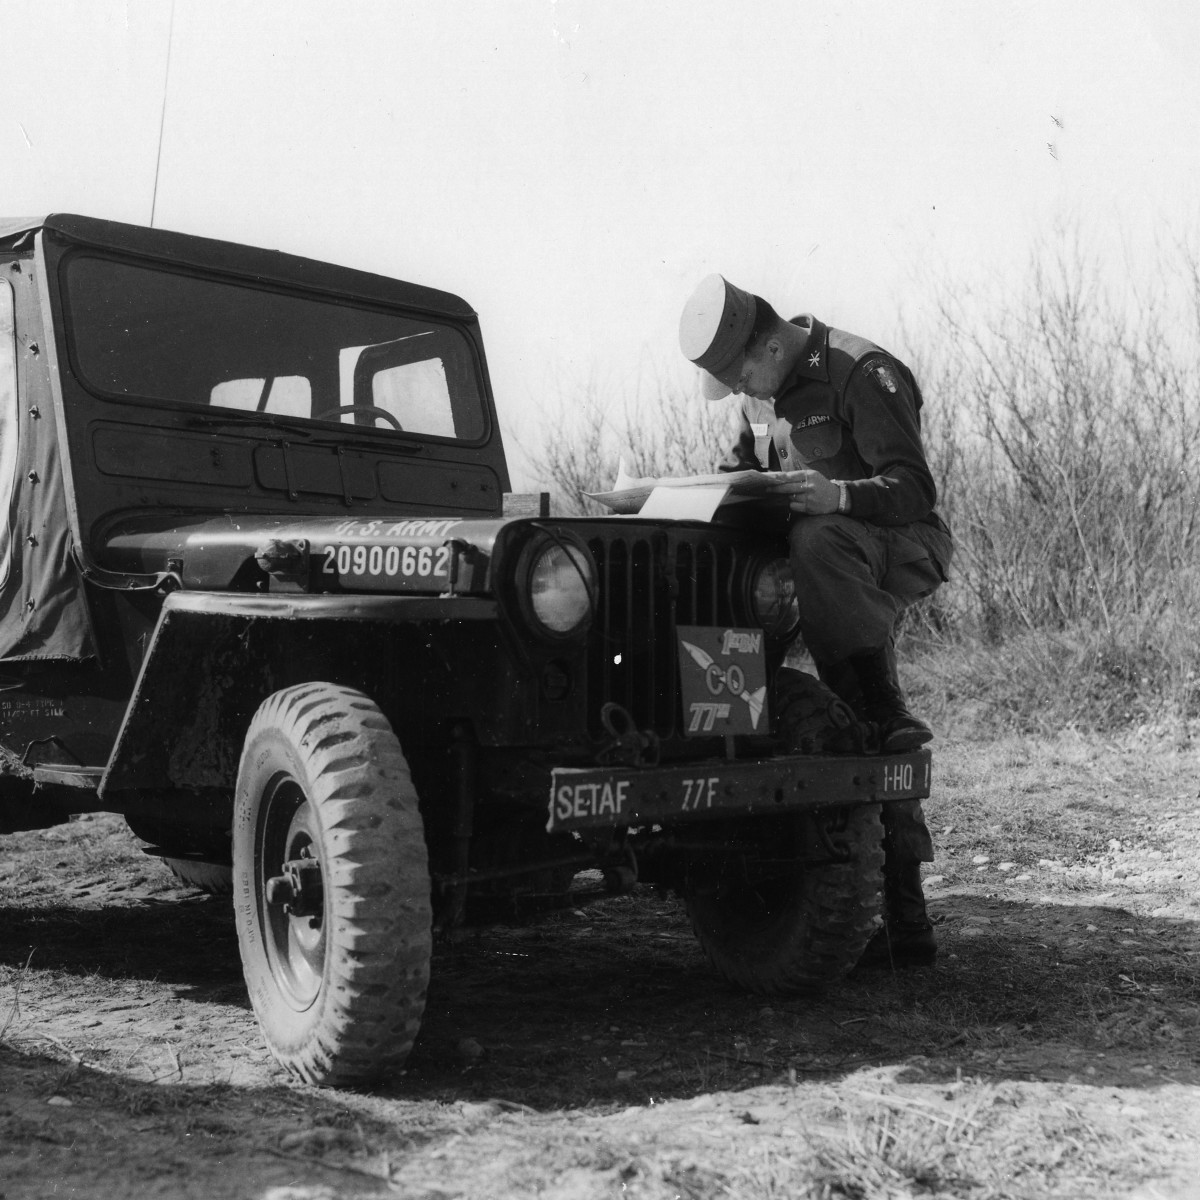 Jeep - United States Army Southern European Task Force (SETAF)